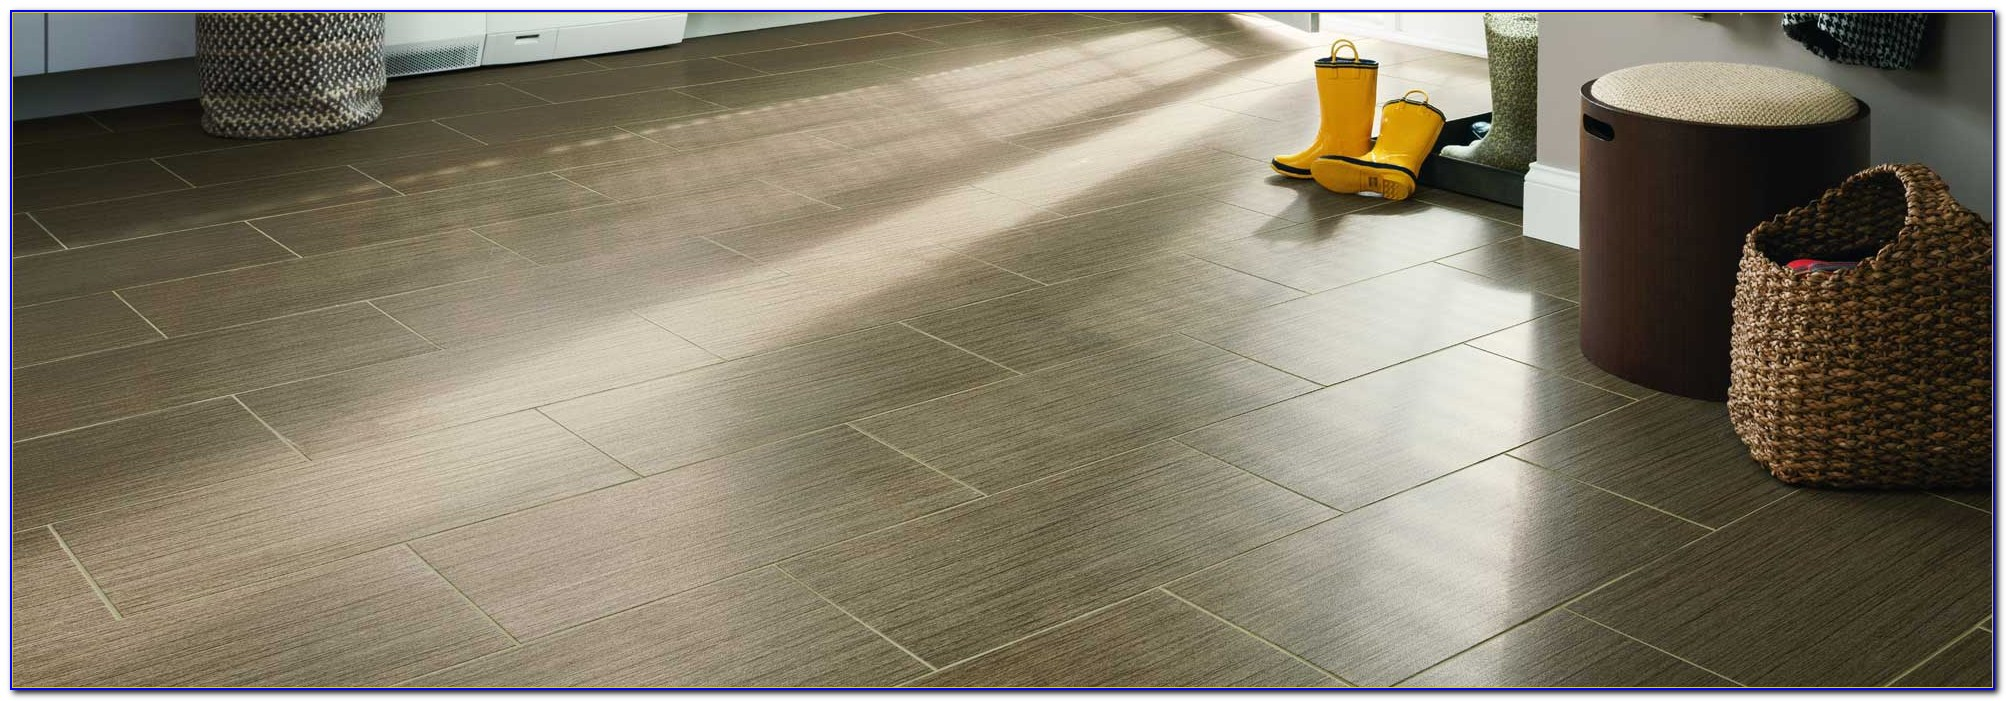 Best Vacuum For Laminate Floors 2015